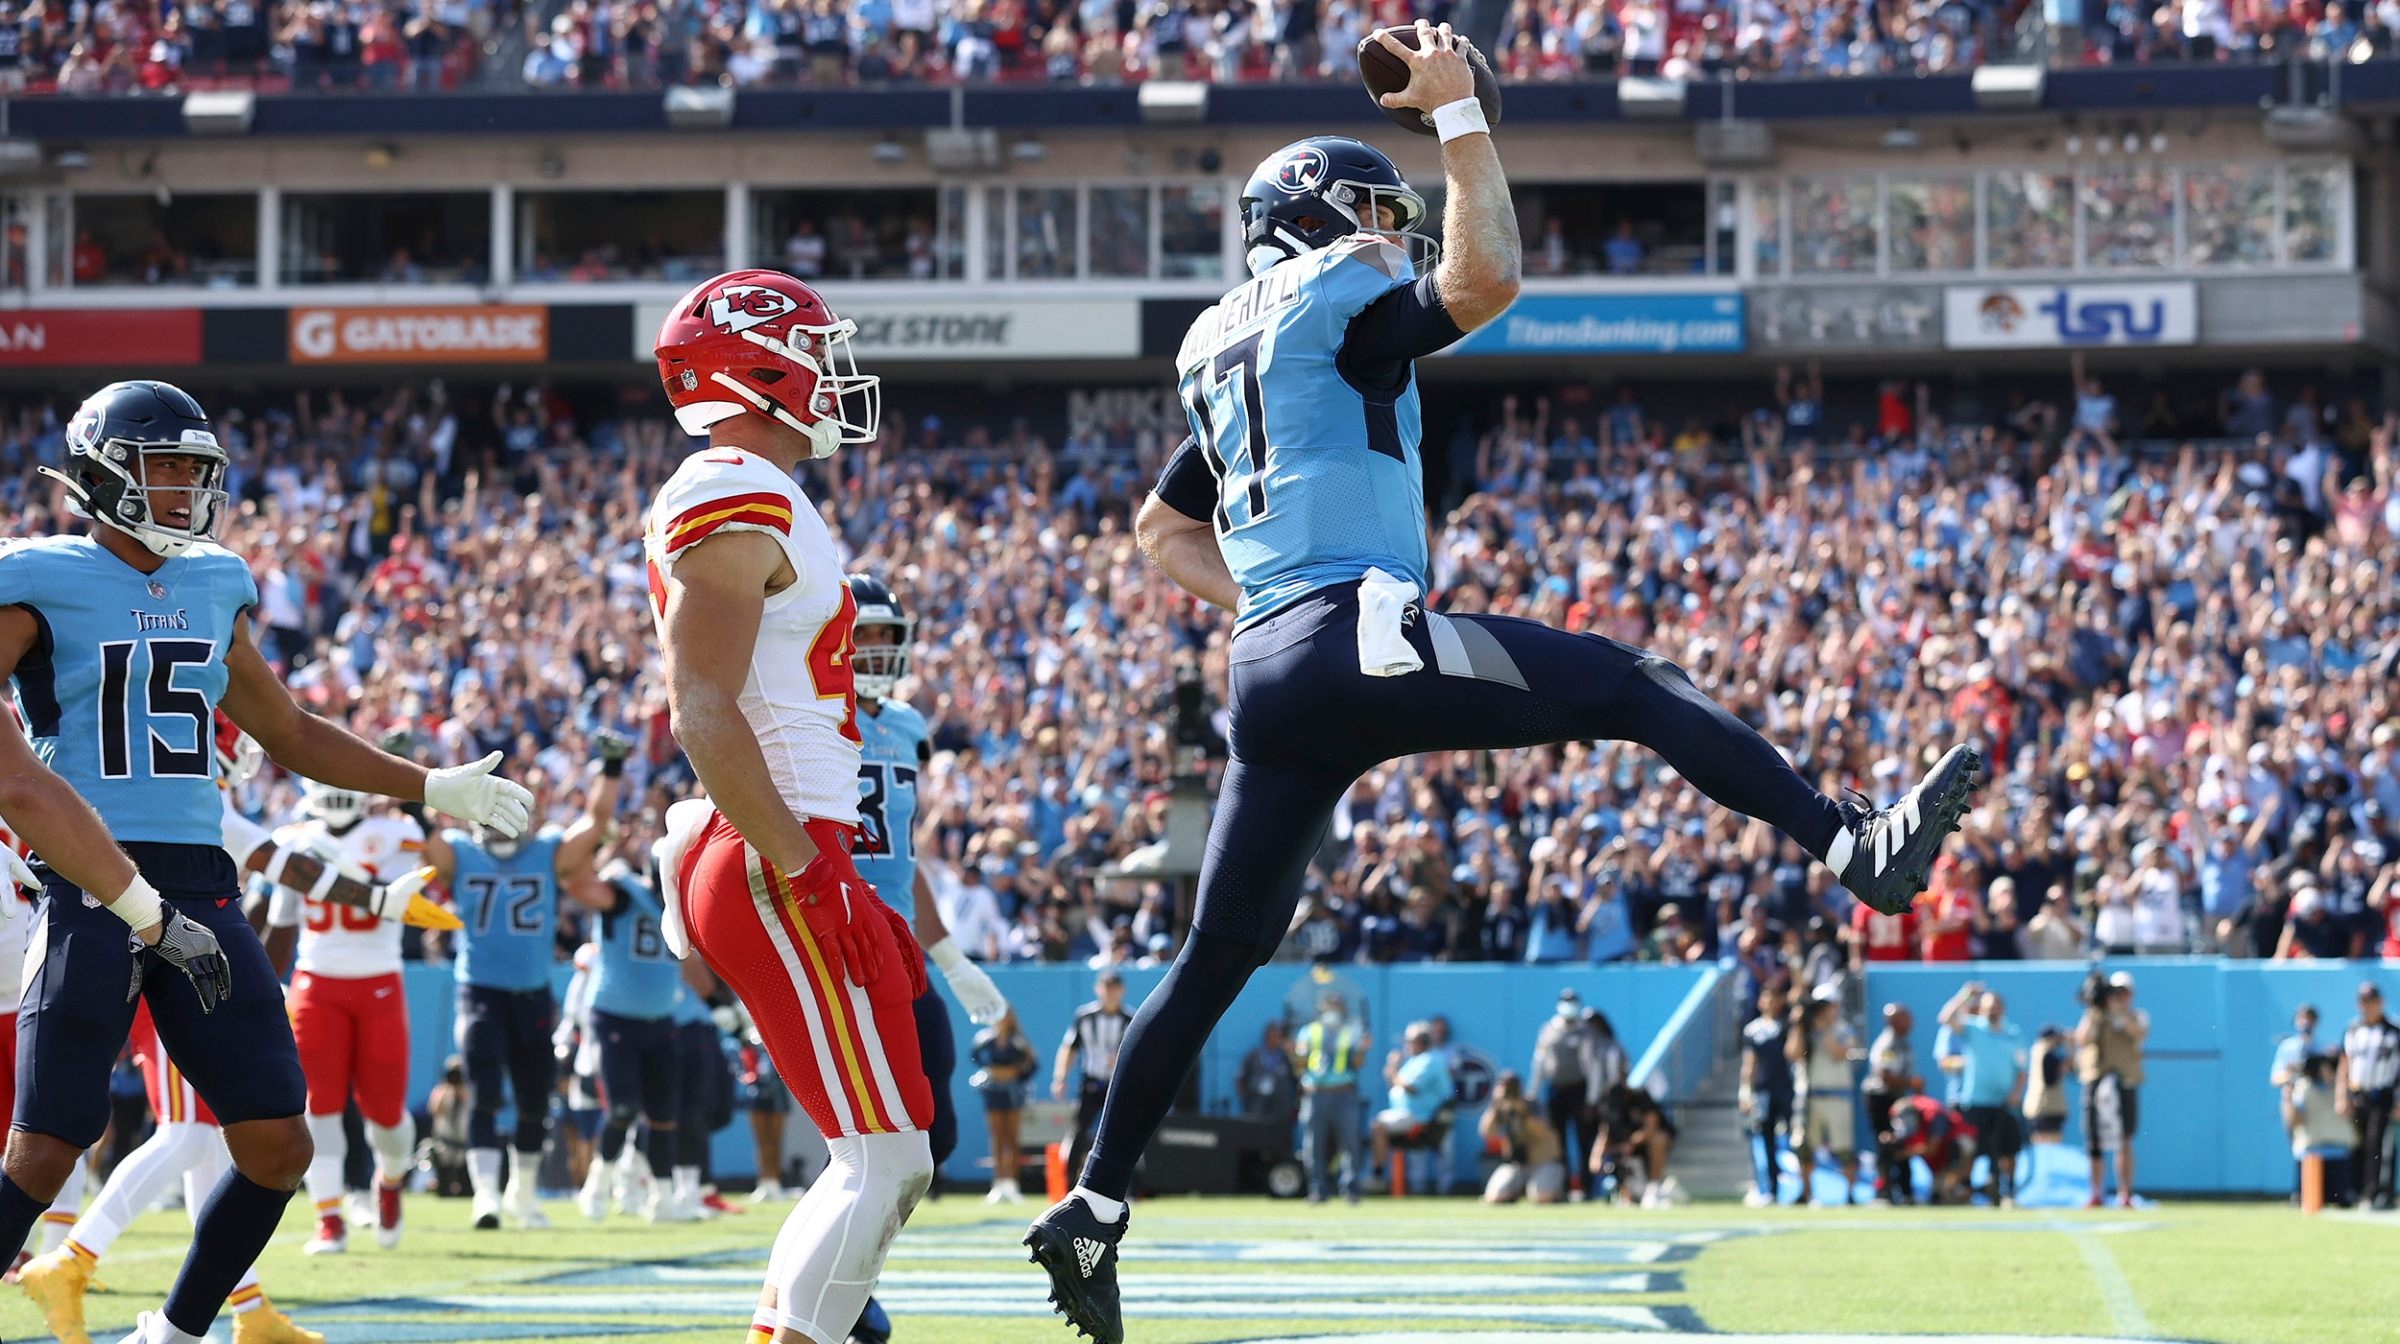 Ryan Tannehill #17 of the Tennessee Titans celebrates after scoring a touchdown in the second quarter against the Kansas City Chiefs in the game at Nissan Stadium on October 24, 2021 in Nashville, Tennessee.